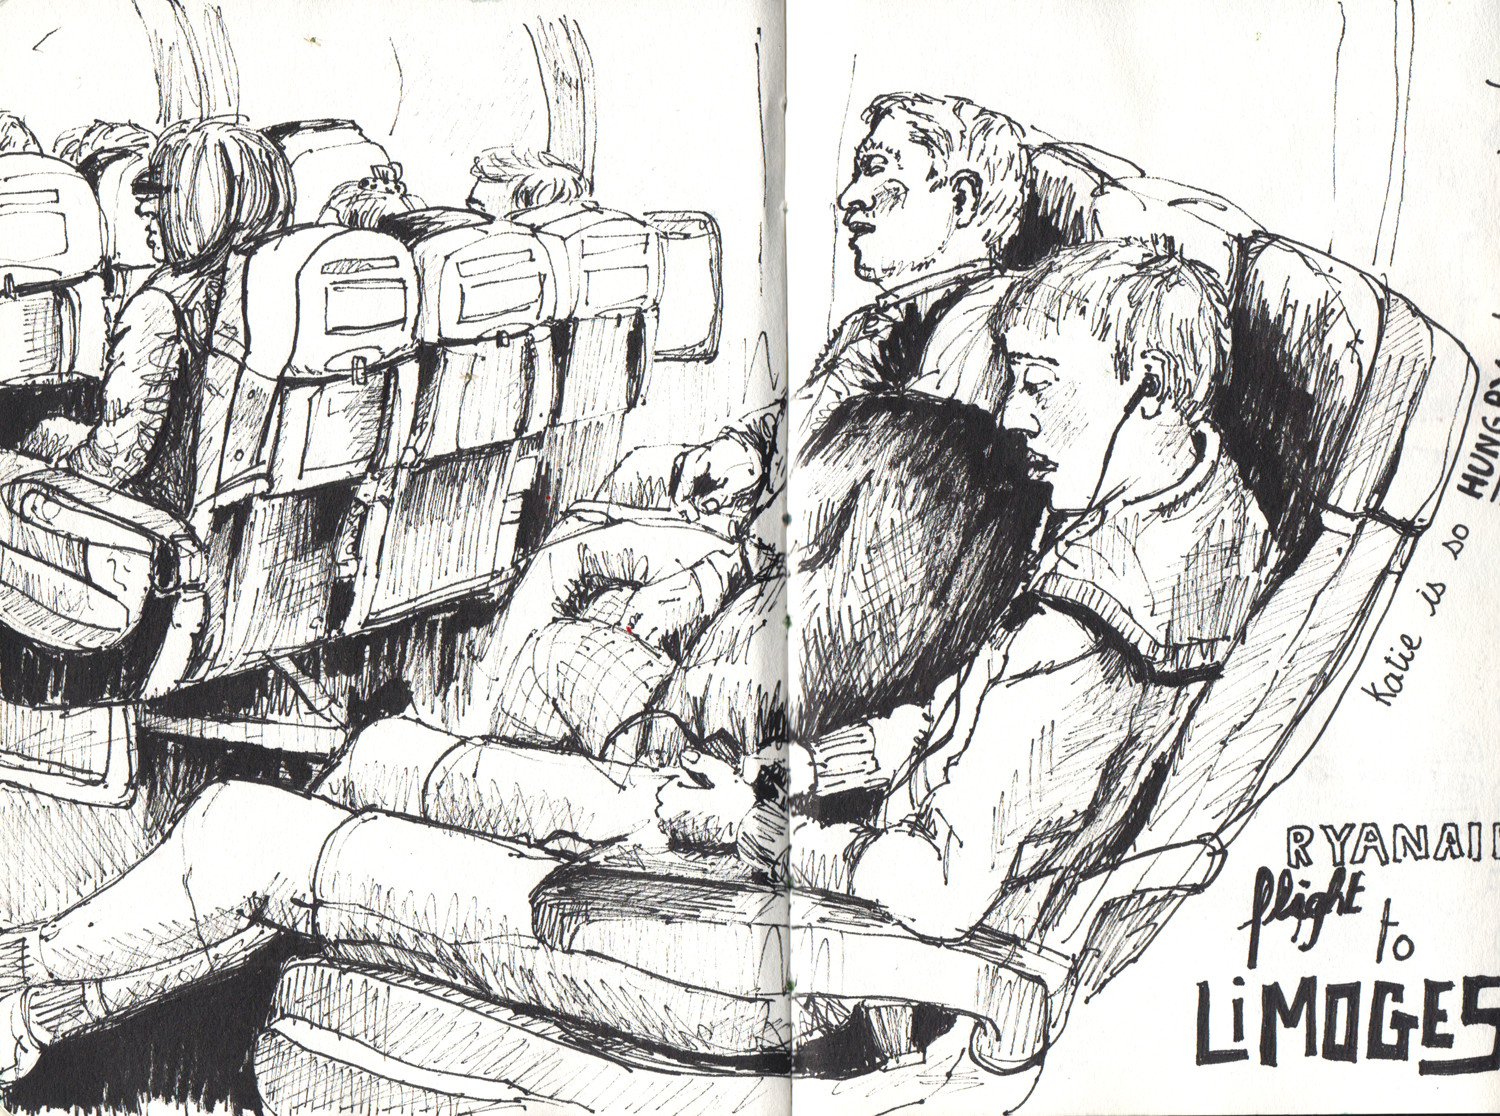 Plane sketch in pen by Sophie Peanut